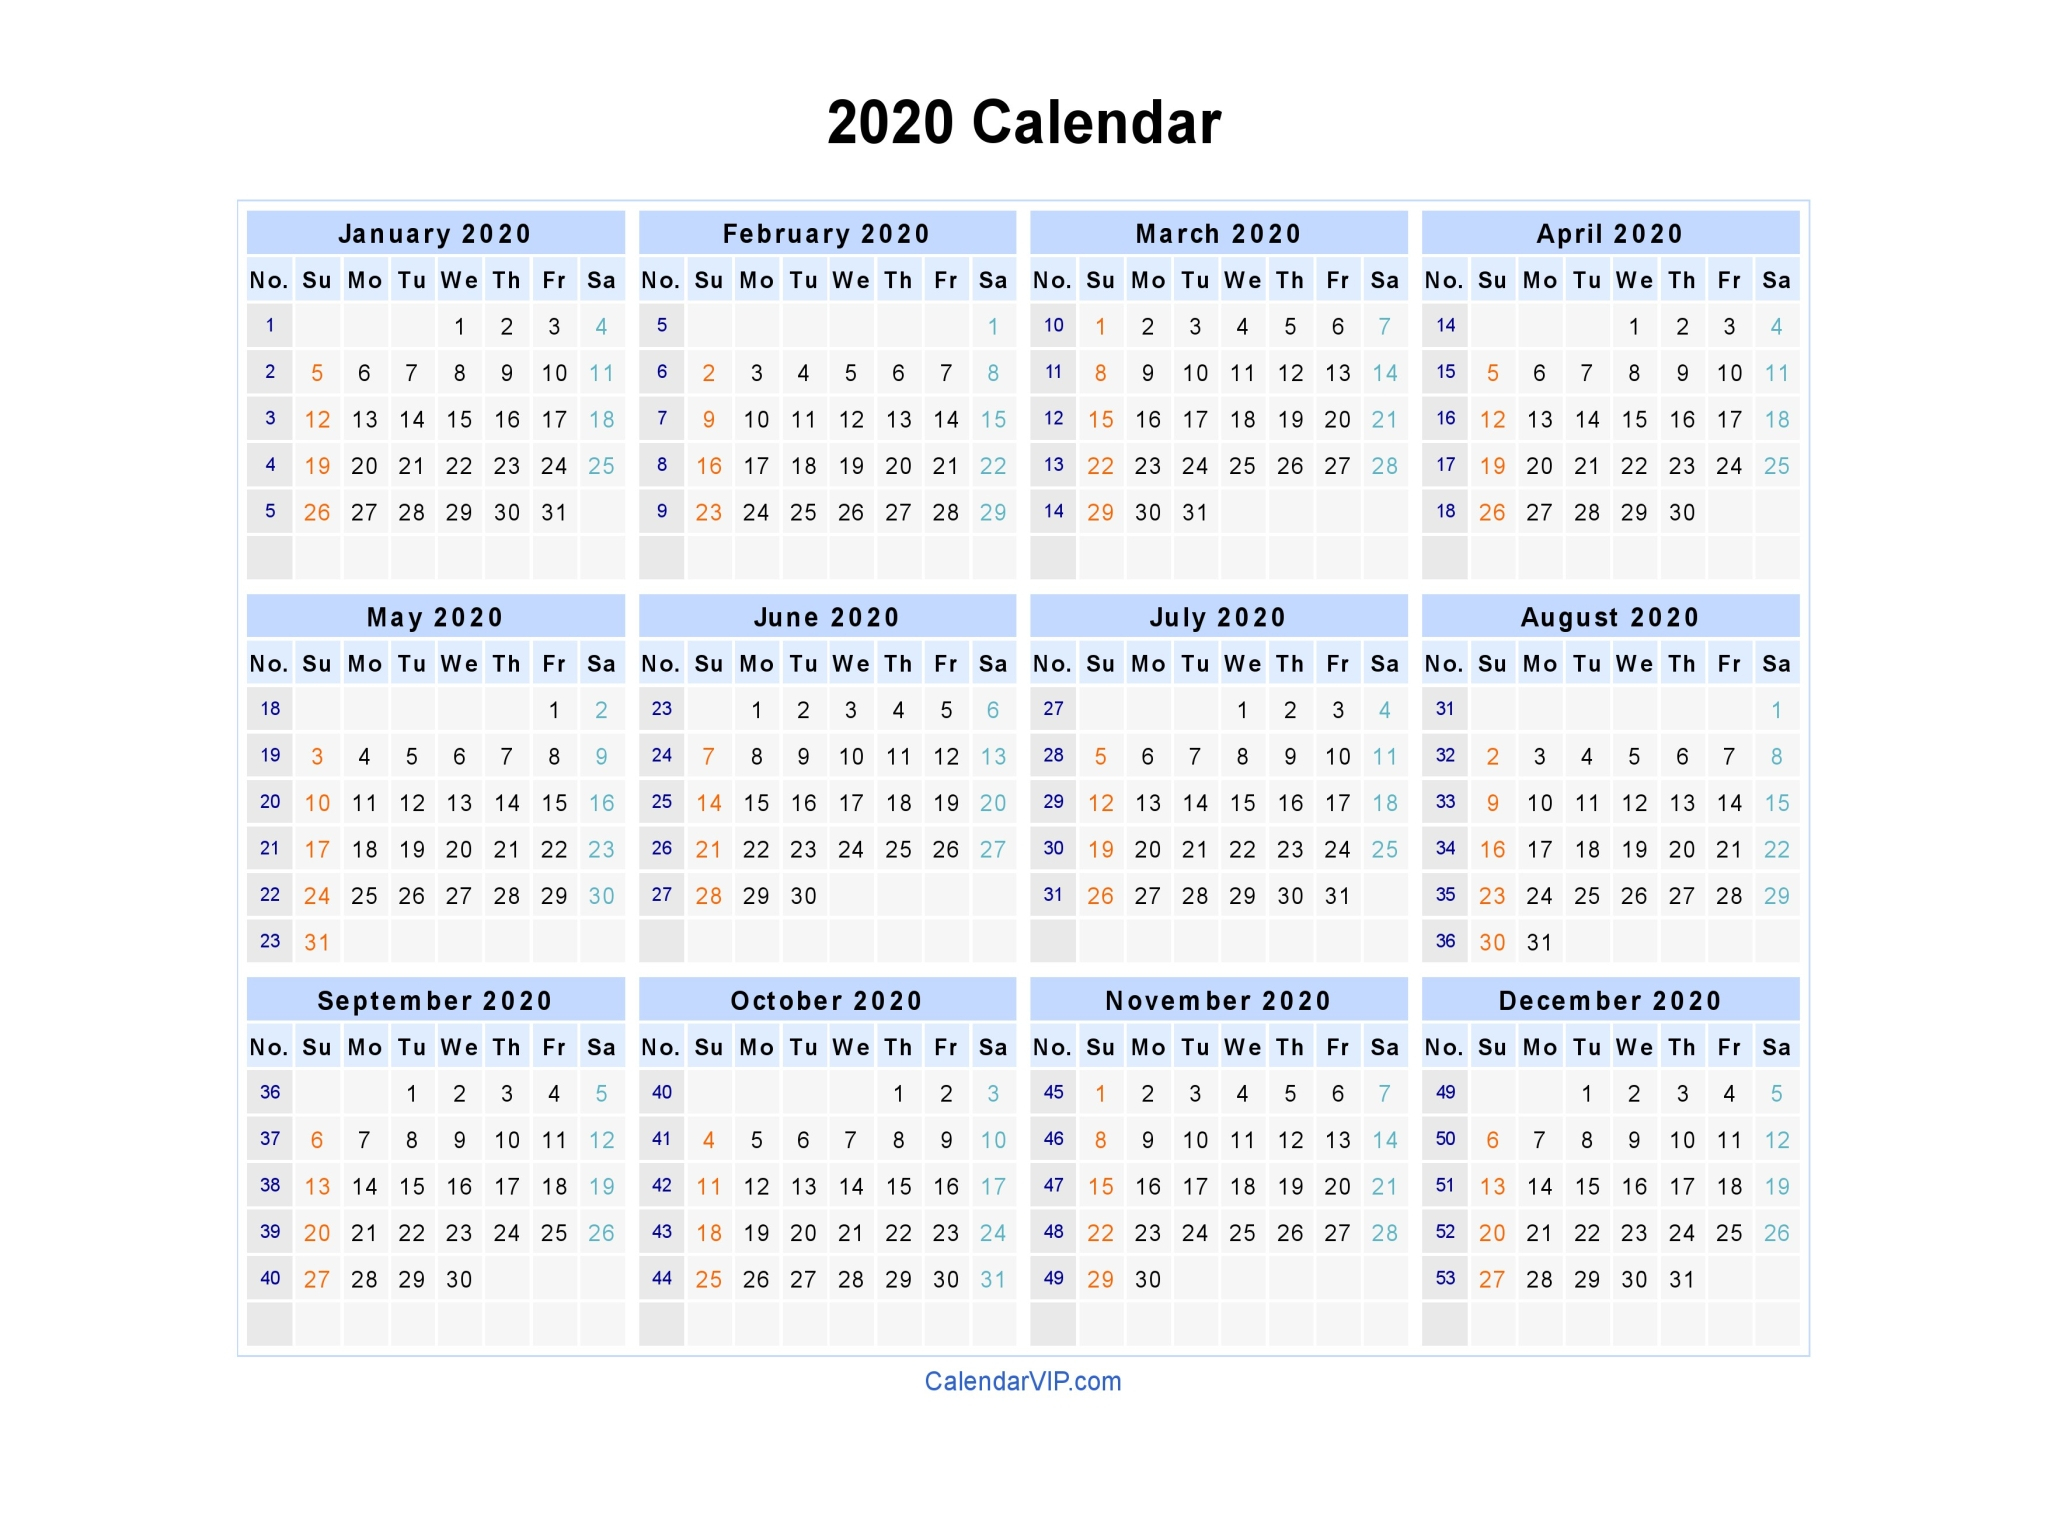 2020 Calendar - Blank Printable Calendar Template In Pdf Word Excel inside Printable 2020 Calendar I Can Edit